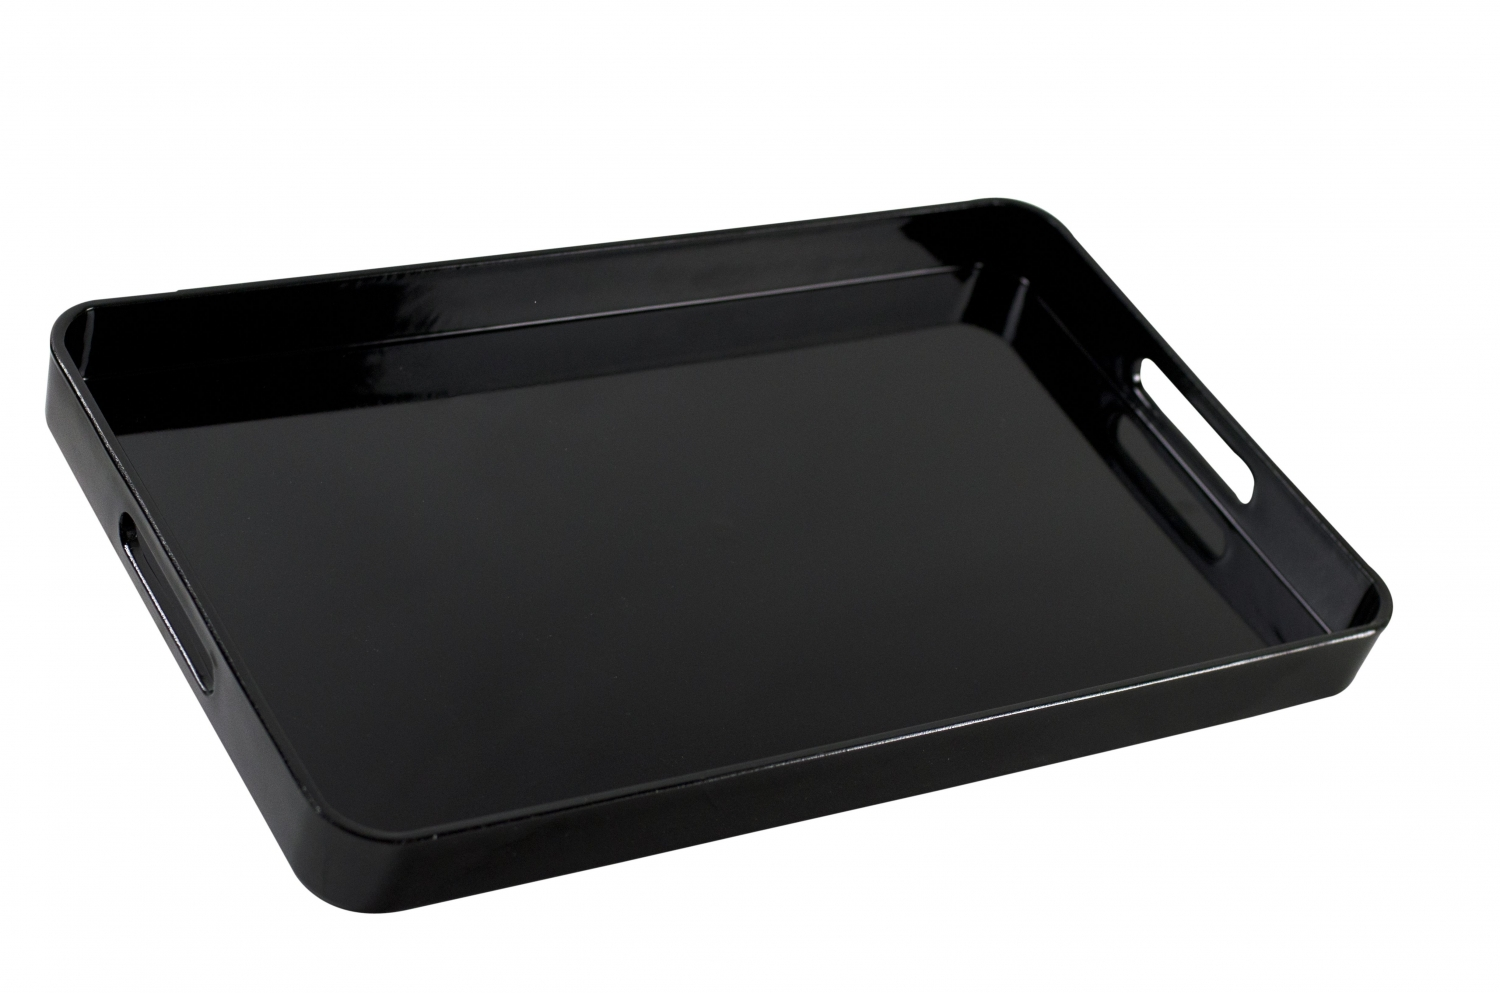 10 Strawberry Street BLK-REC Black Lacquer Rectangular Serving Tray 19.25